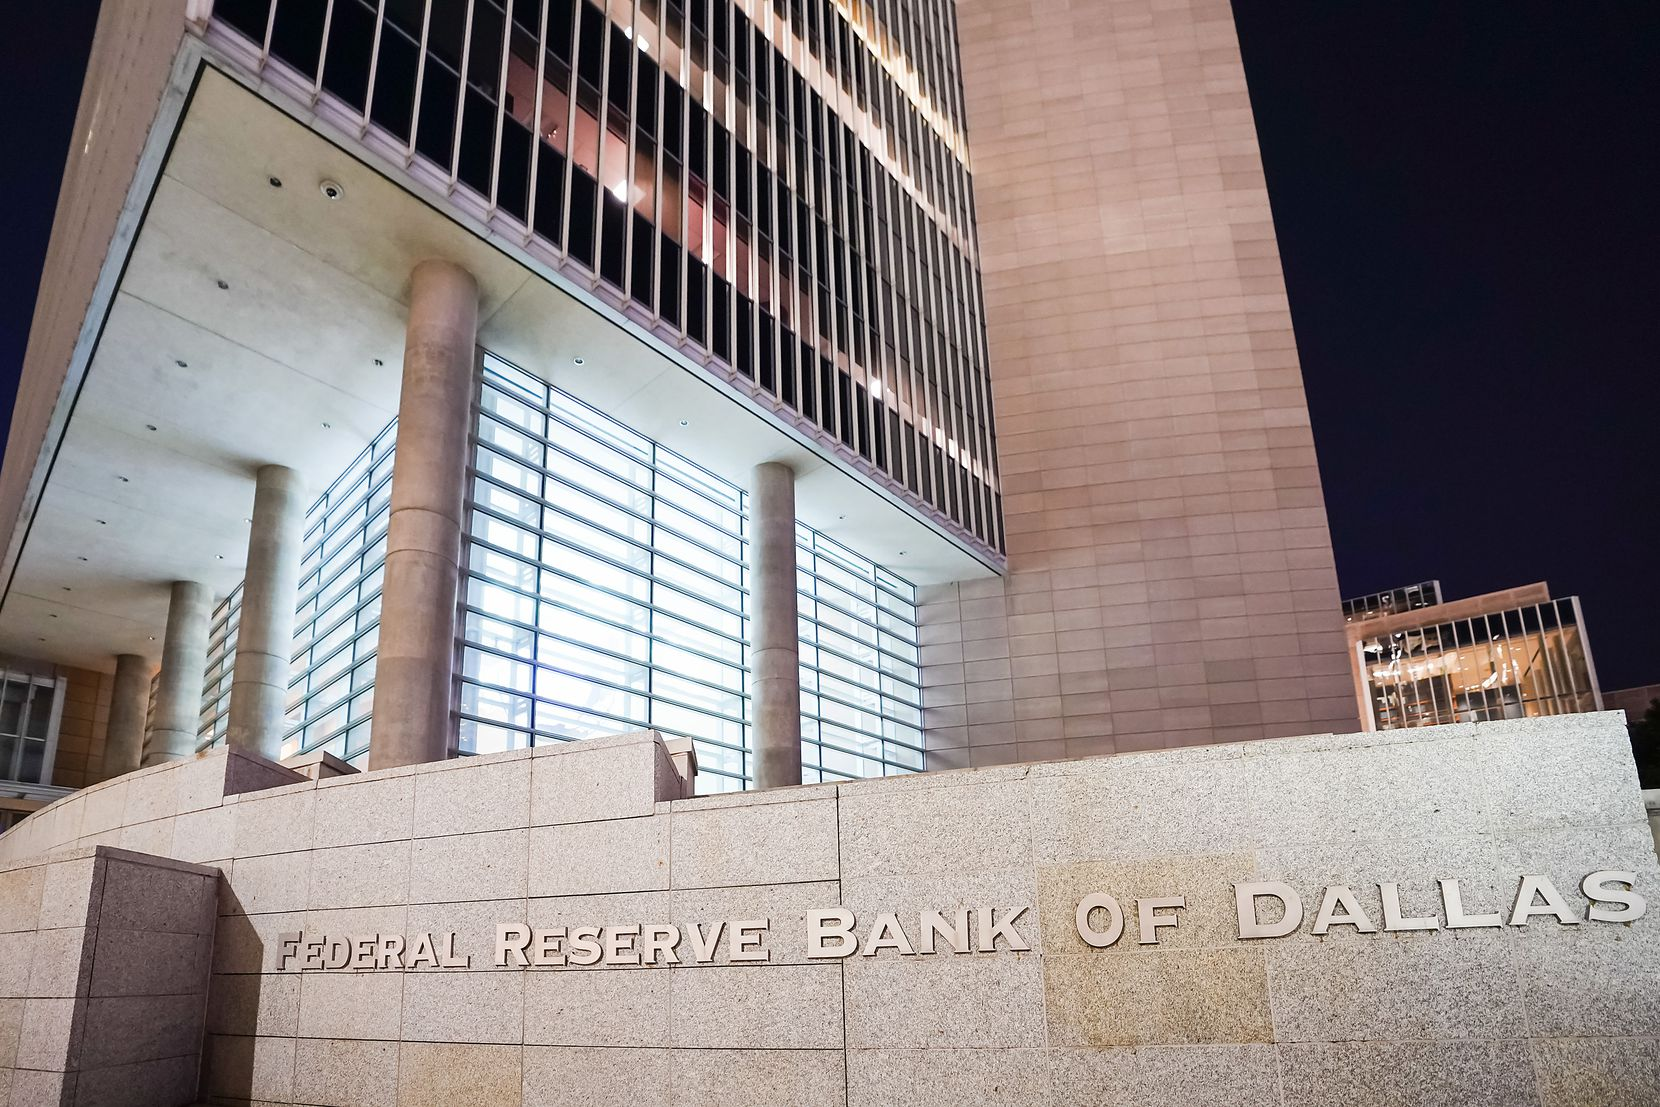 Exterior view of the Federal Reserve Bank of Dallas on Thursday, Aug. 13, 2020, in Dallas. (Smiley N. Pool/The Dallas Morning News)